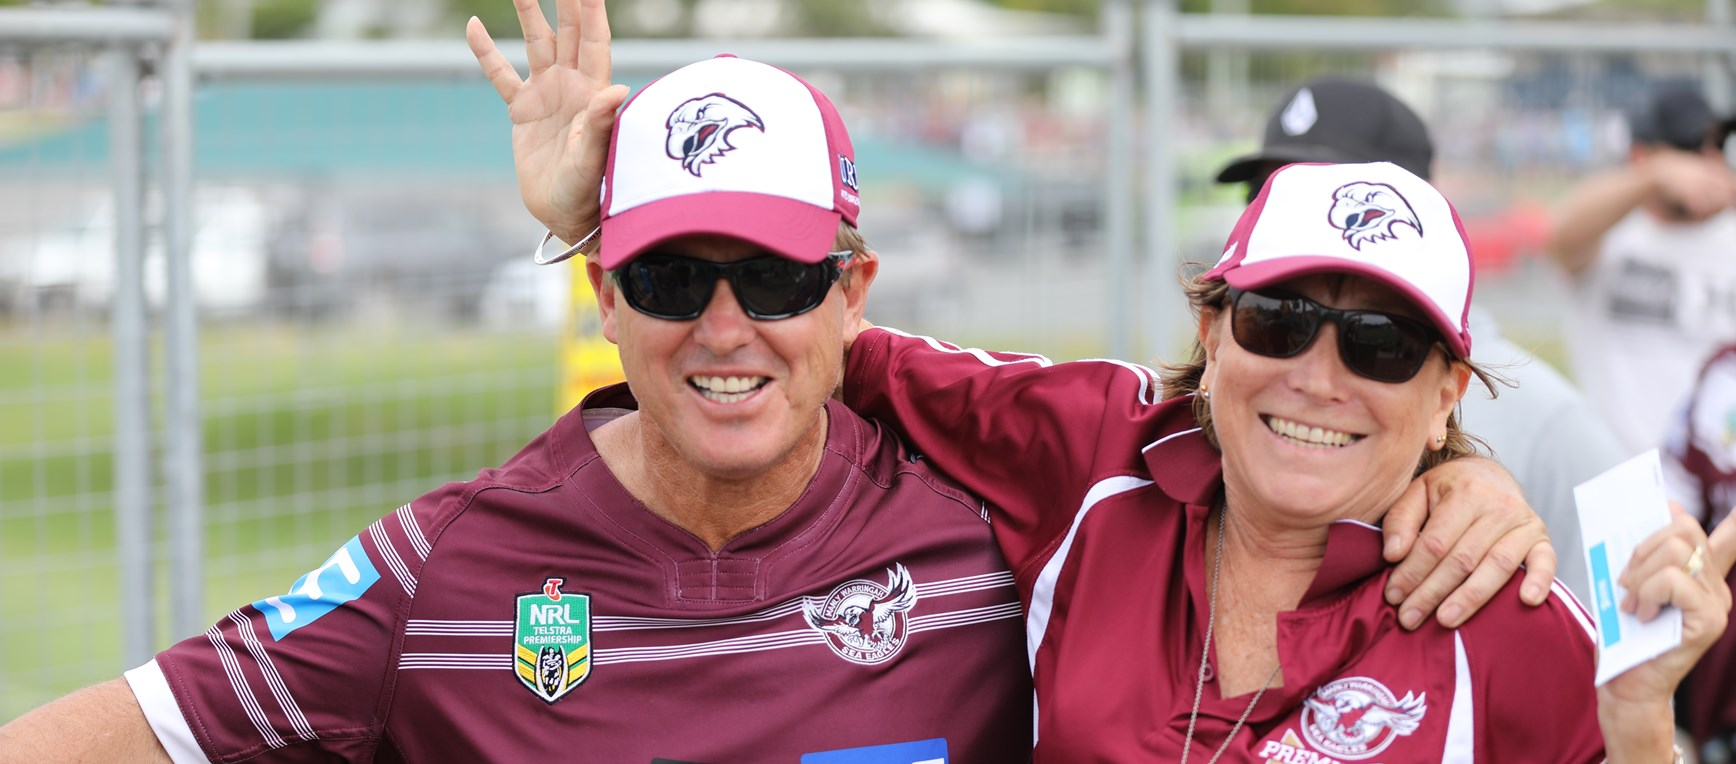 Sea Eagles fans come out in force